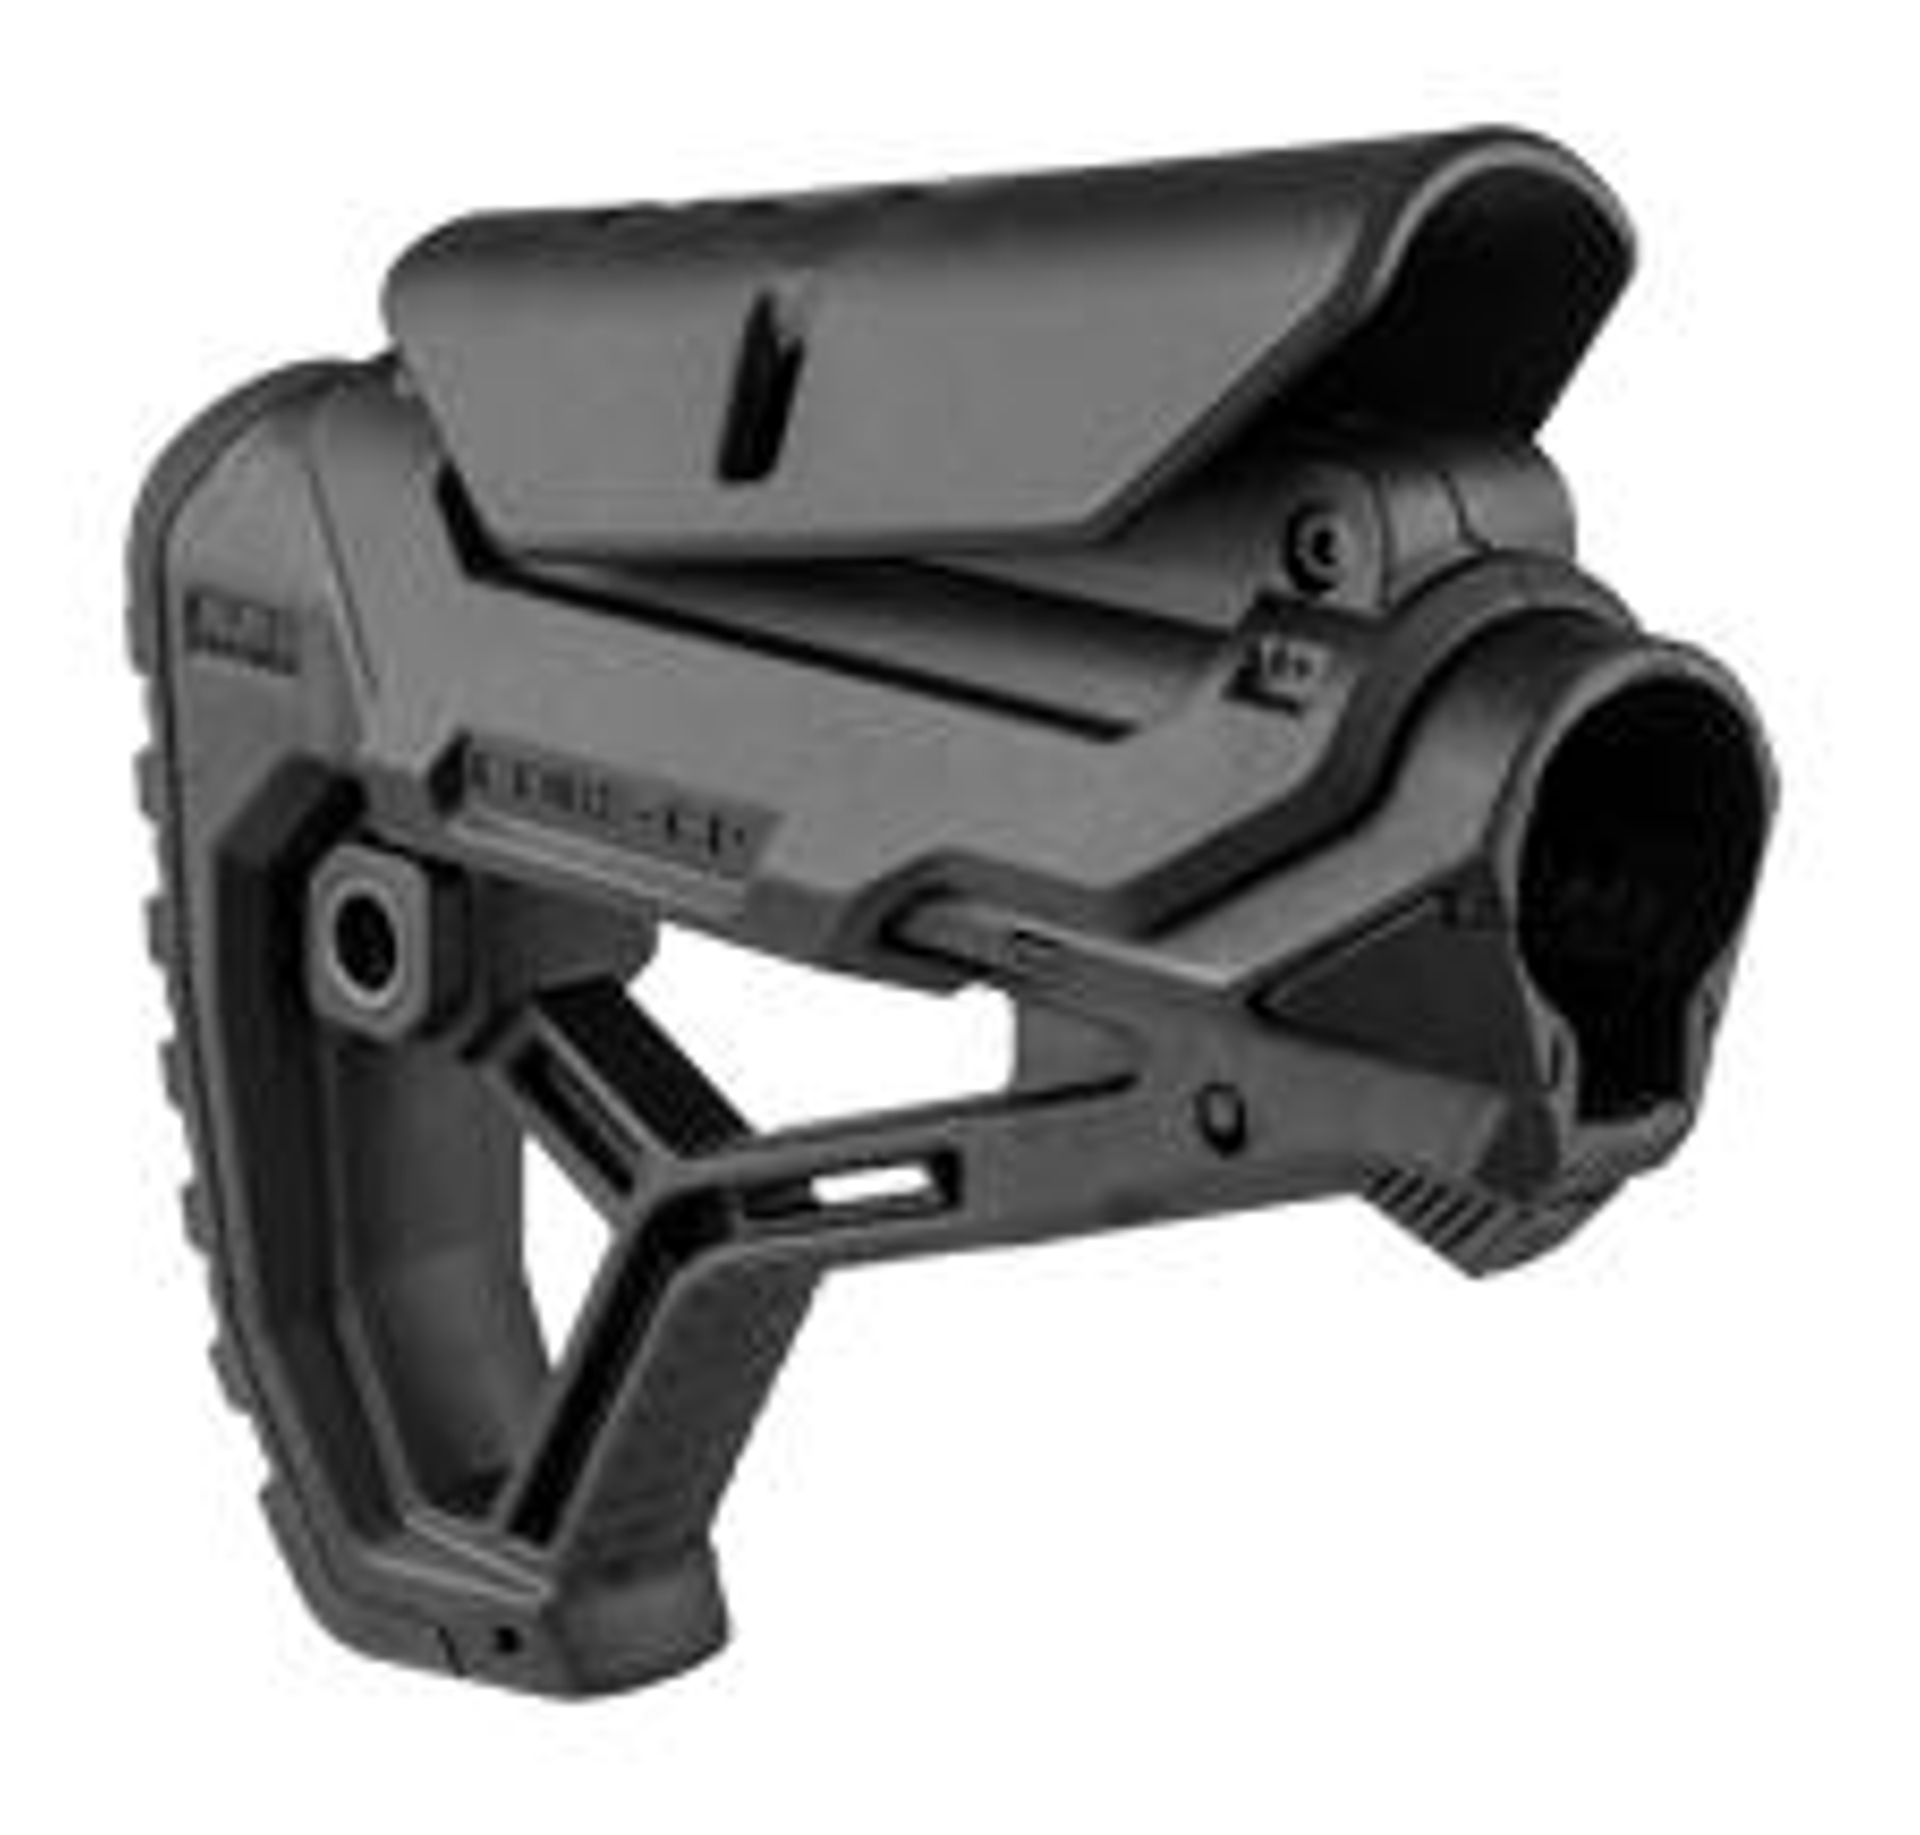 Collapsible Butt Stock for Mil-Spec or Com-Spec buffer tubes w/ Adjustable Cheek Piece